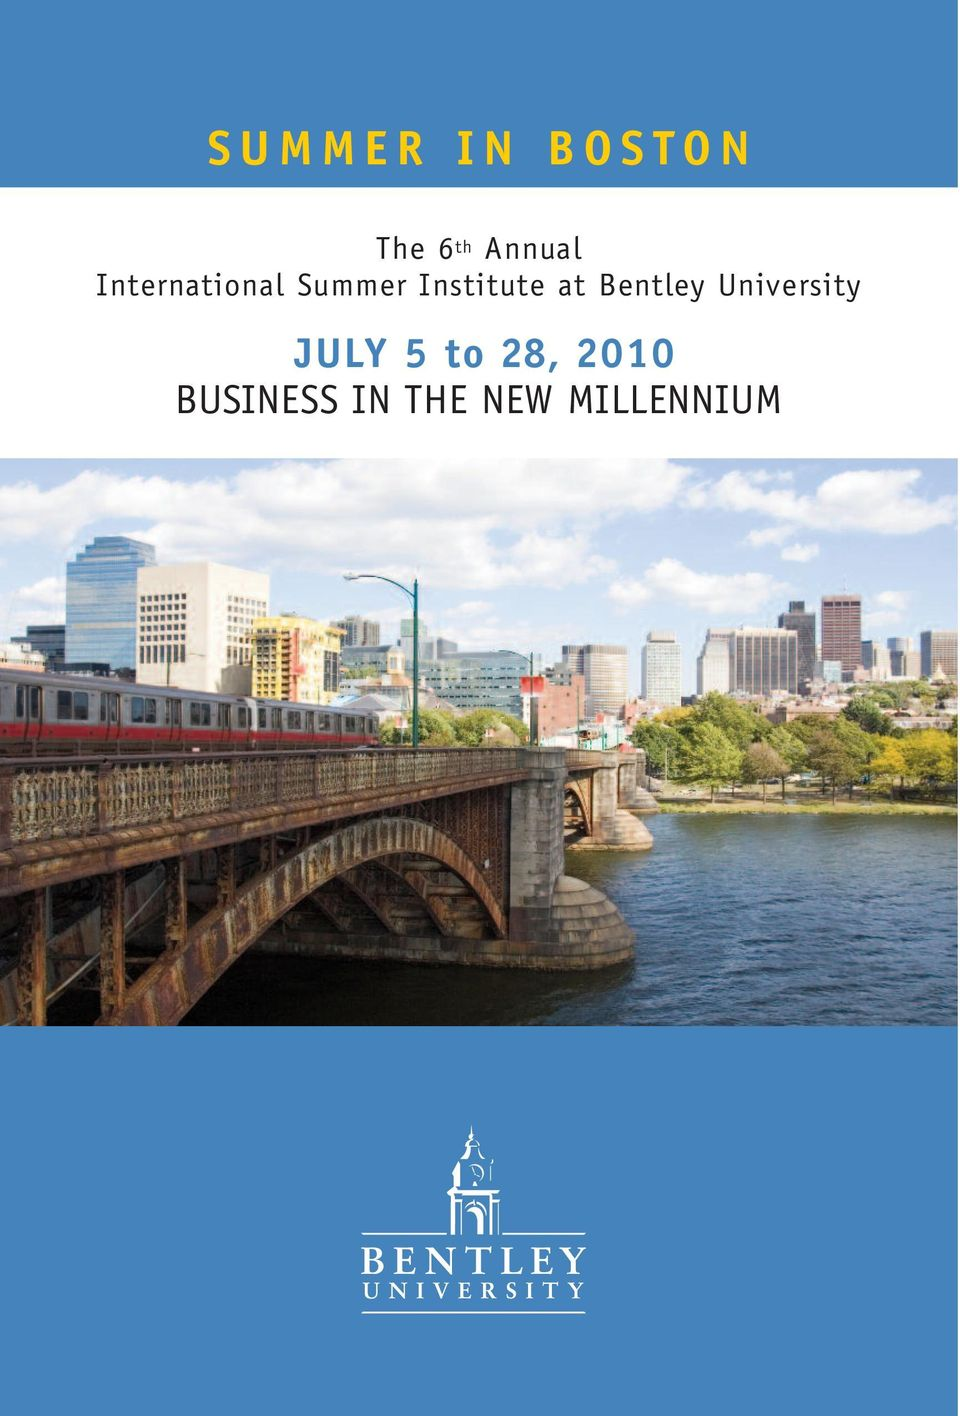 Institute at Bentley University JULY